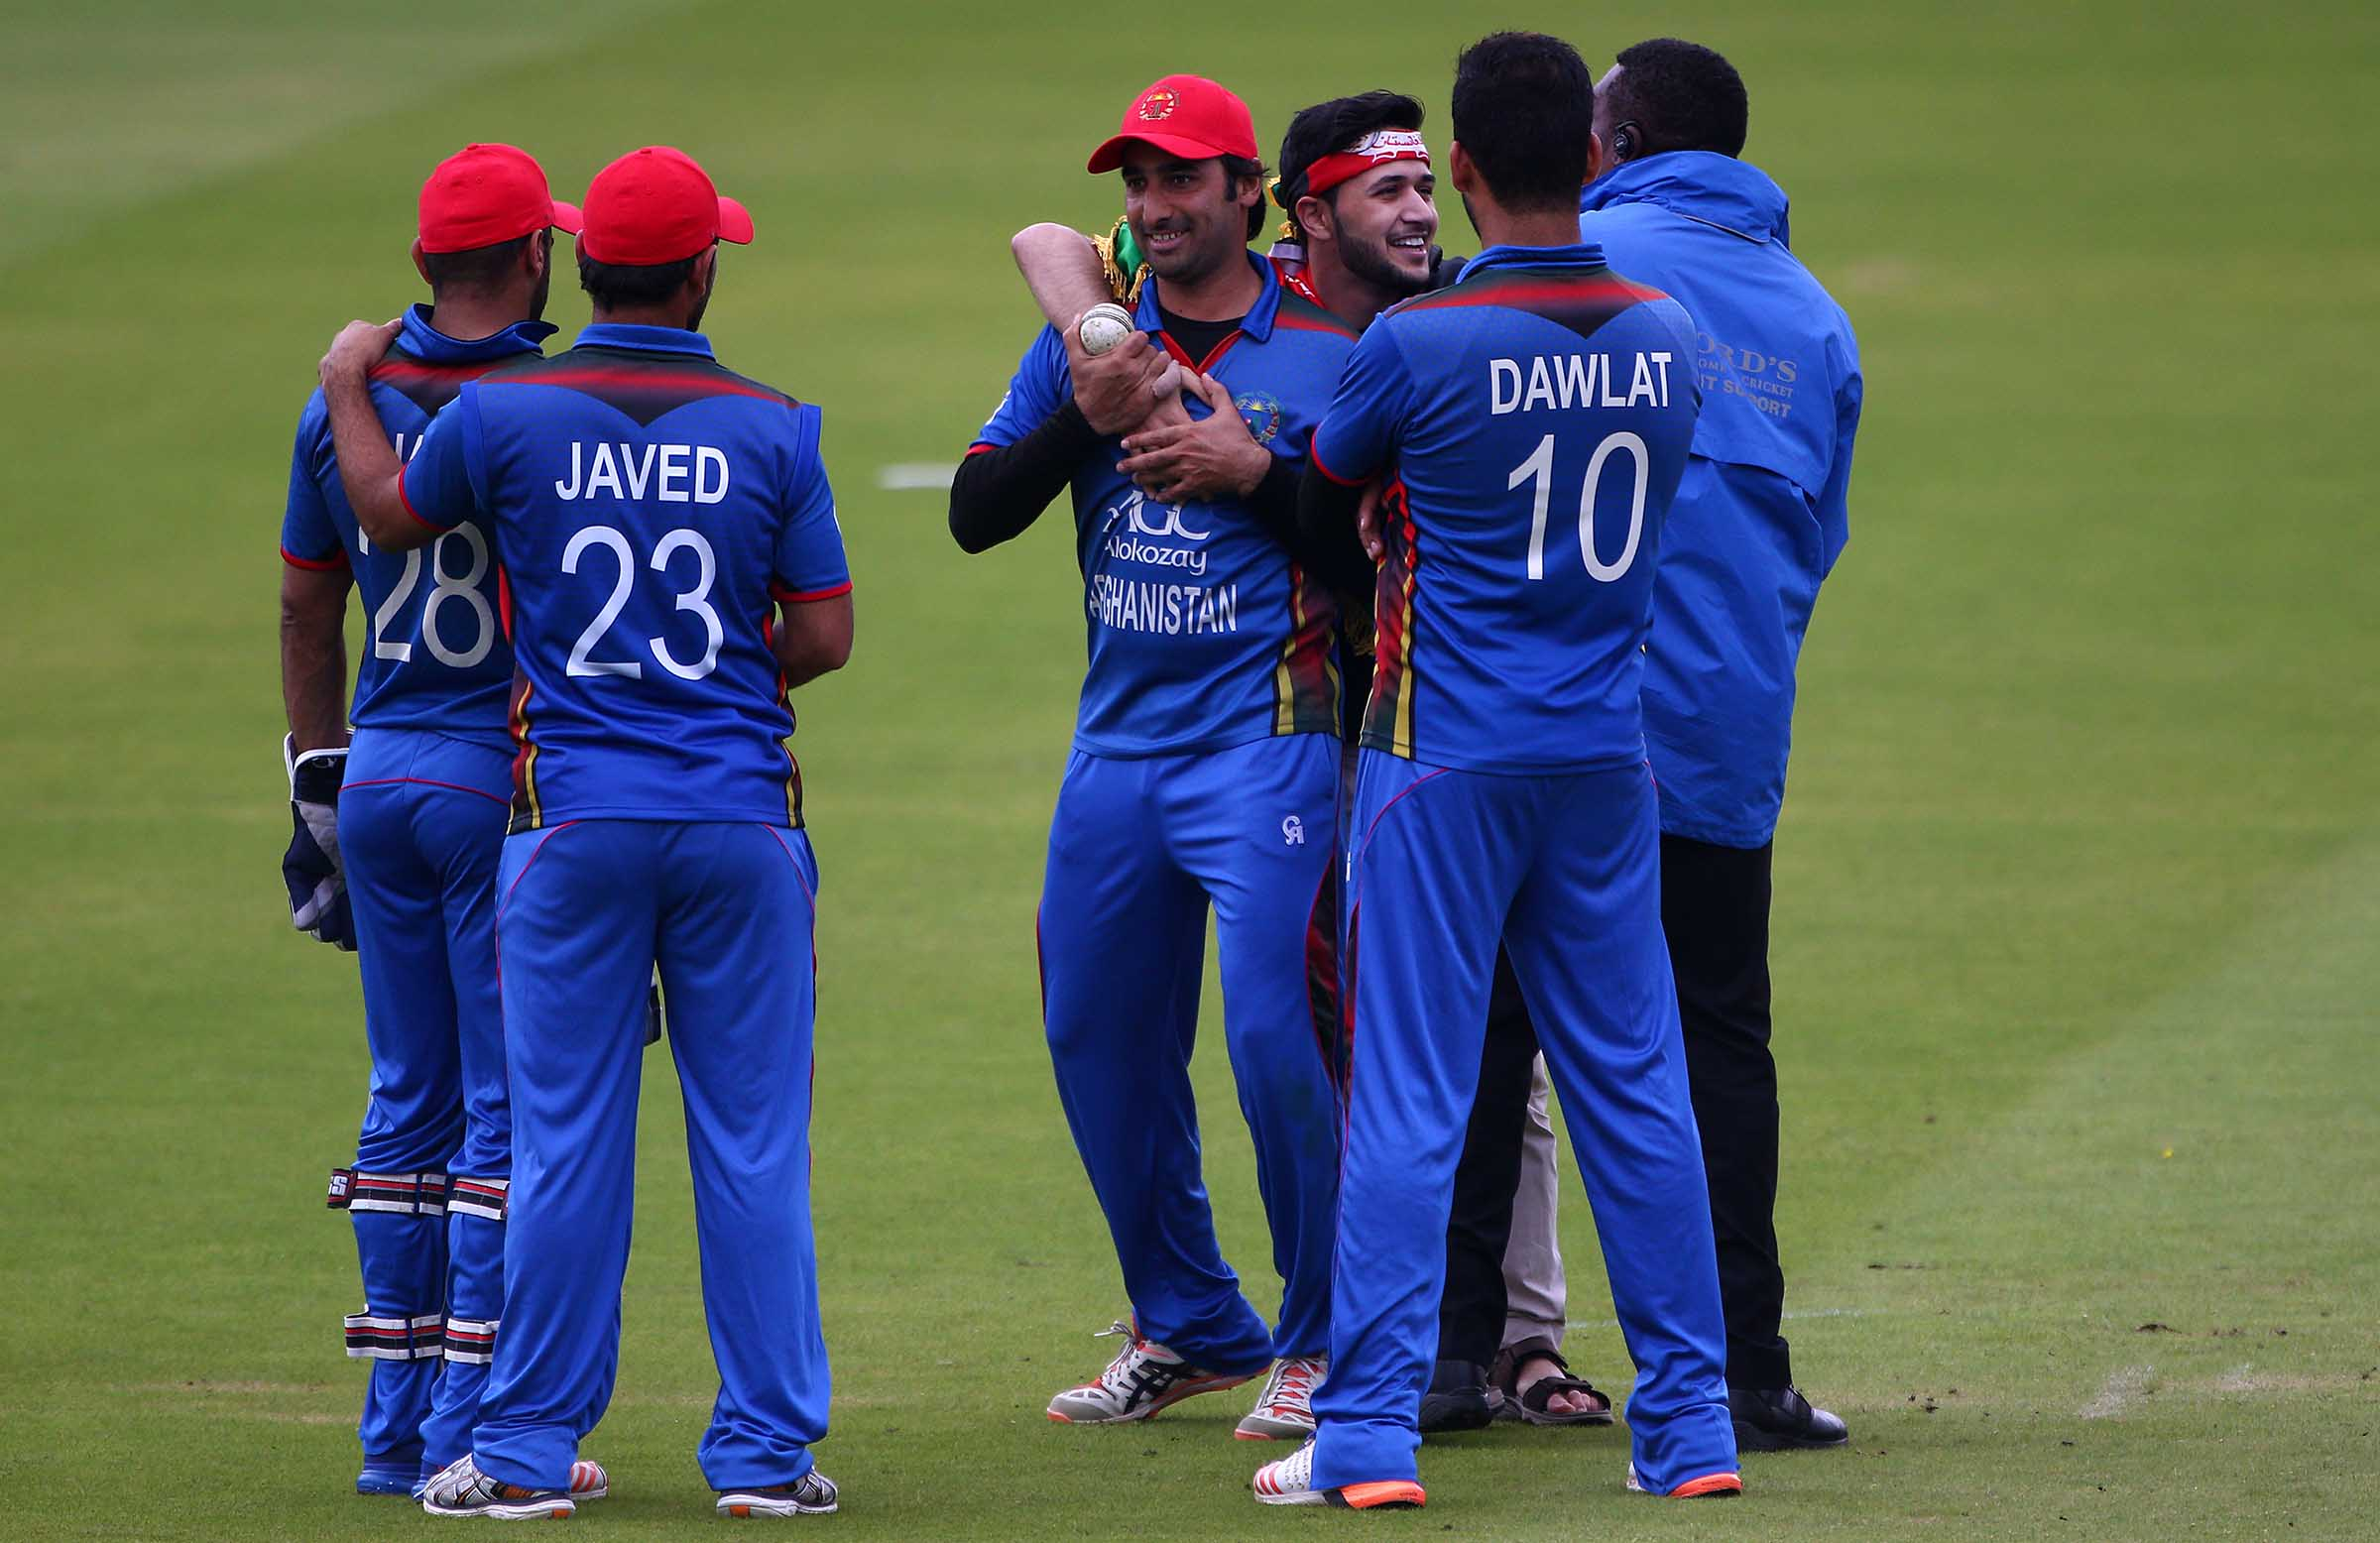 Afghanistan A replace Australia A in South Africa triangular series